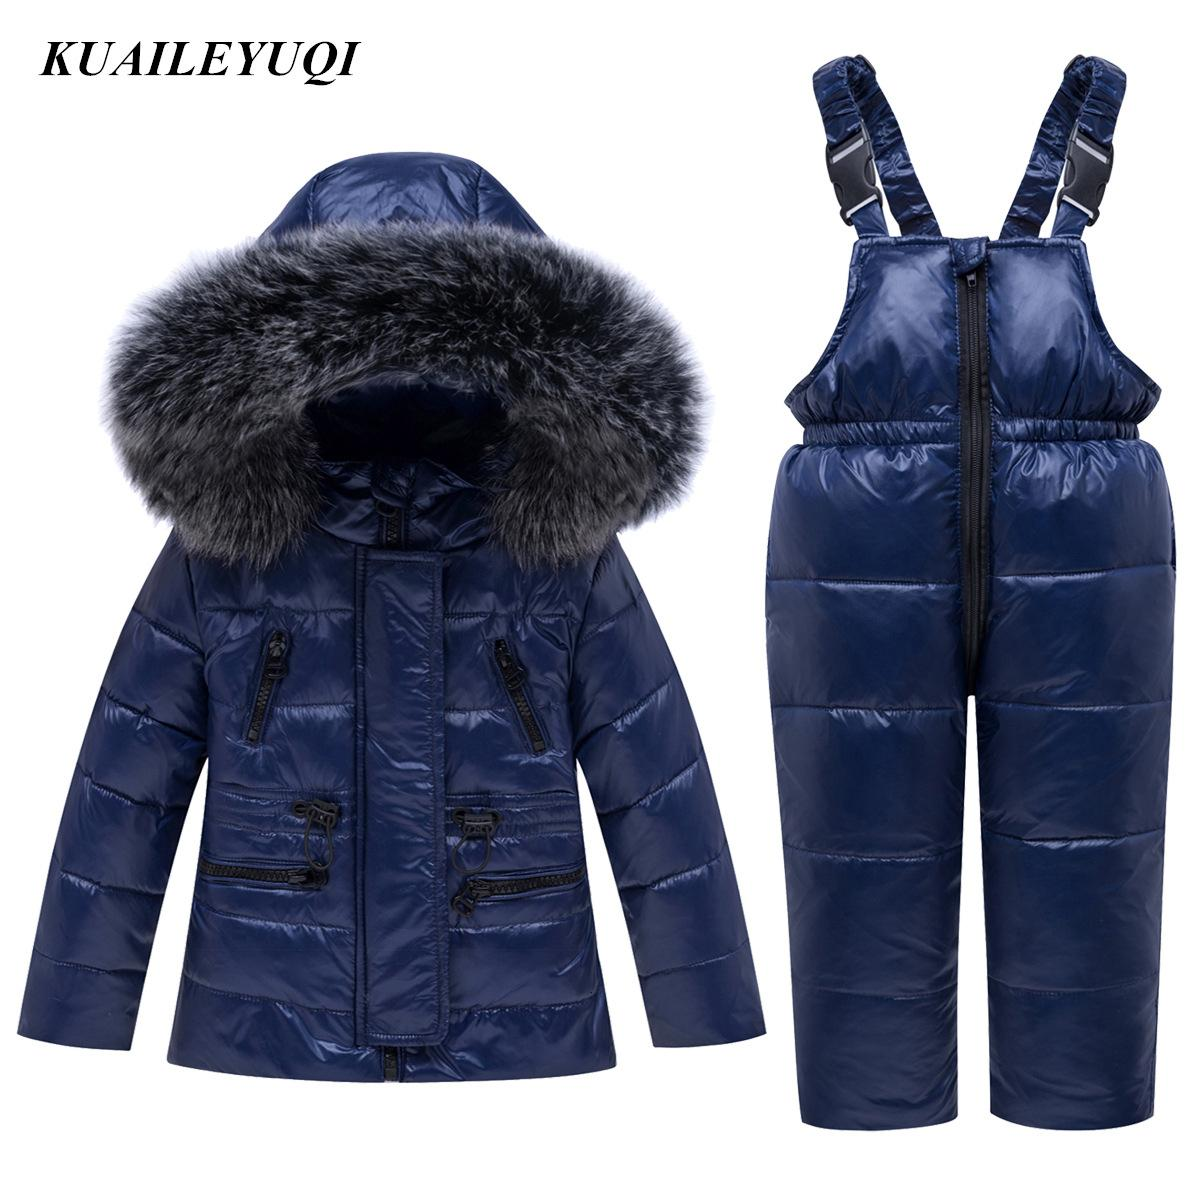 -30 degrees Russia 2019 new Winter warm Baby Boy duck Down Jacket coat Children parka real Fur collar Kids Ski Set Girls ClothesMX190916